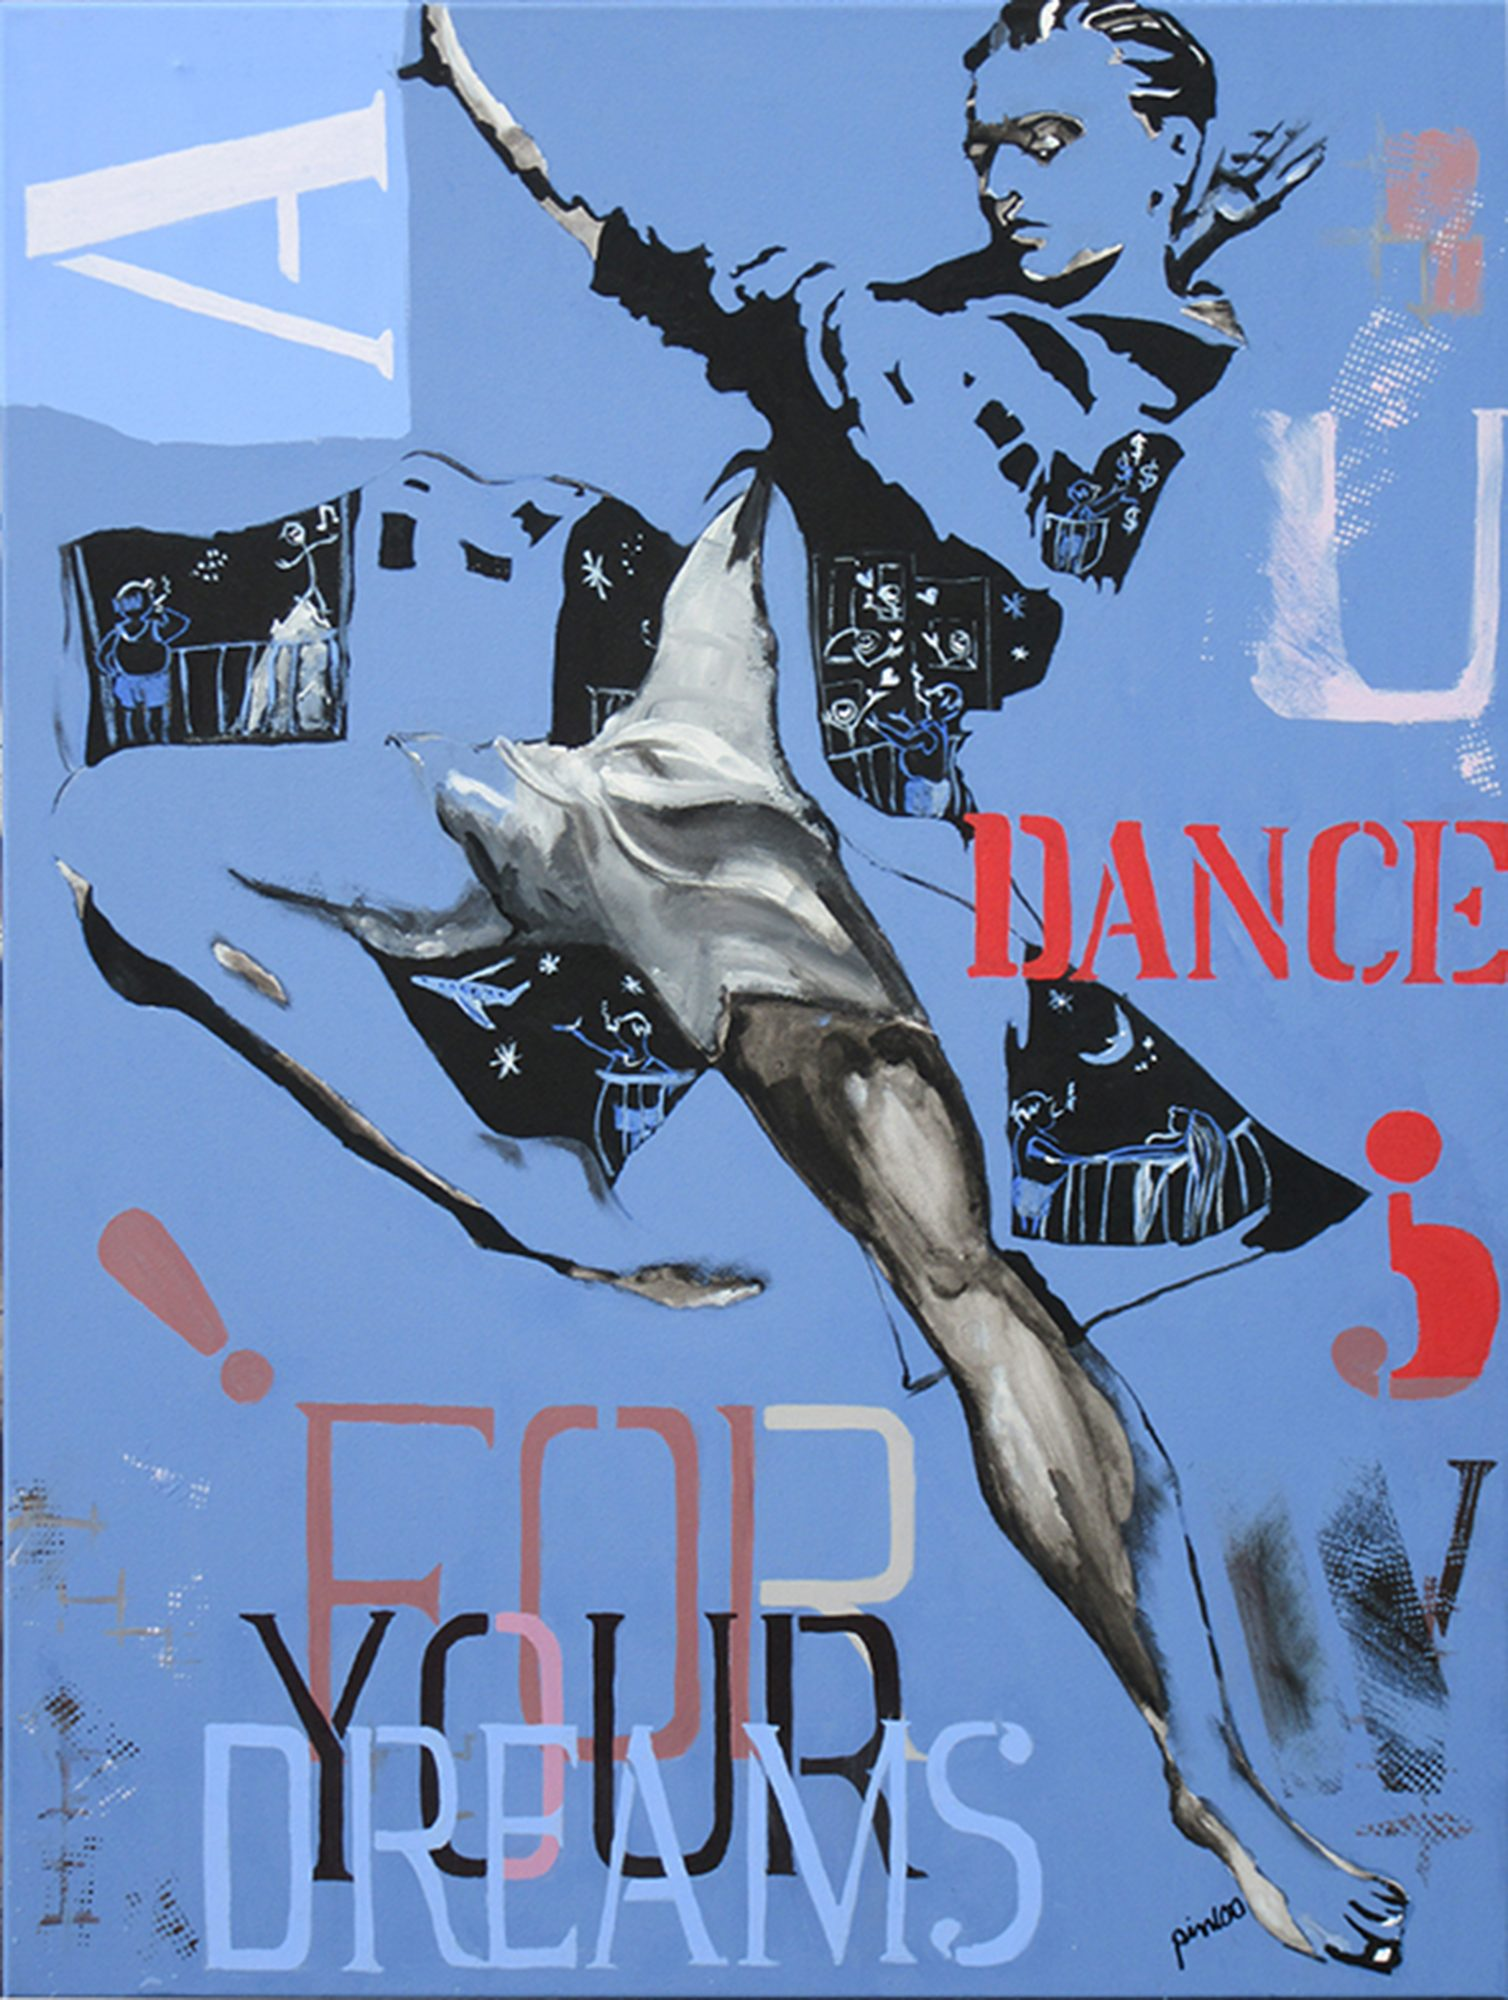 DANCE for your dreams